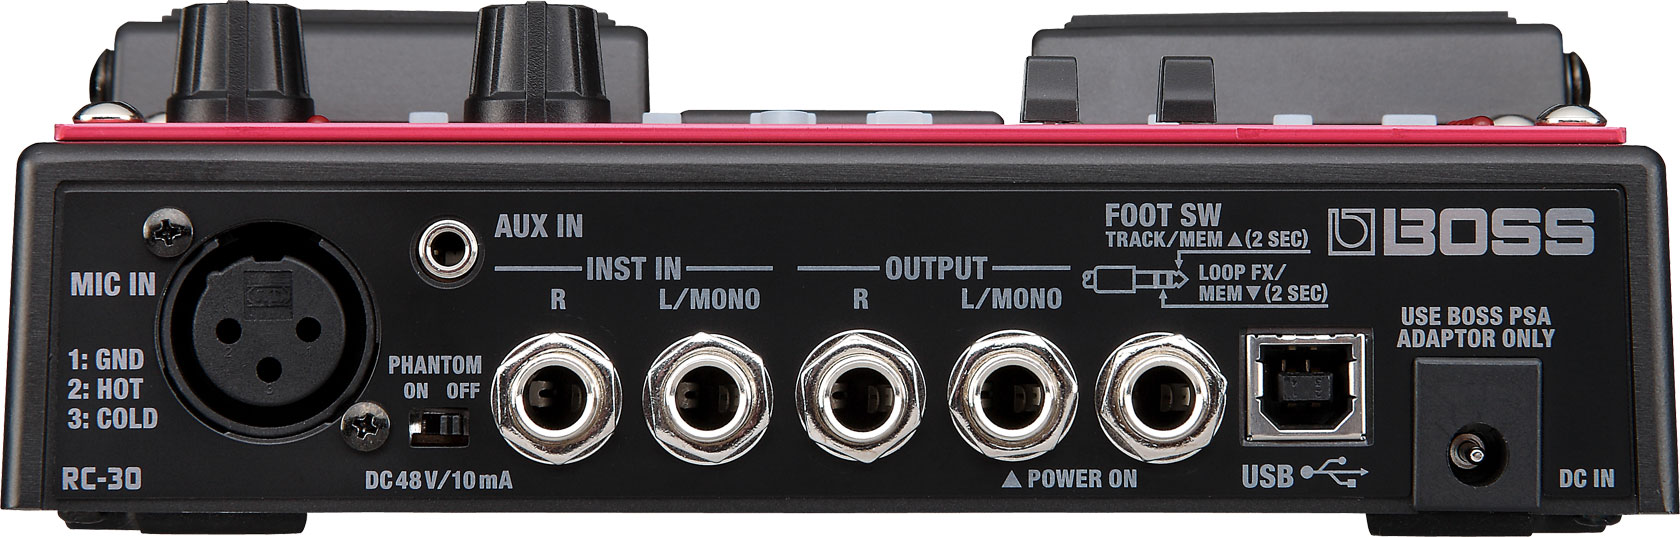 Boss Rc 30 Loop Station 2 Way Video Switch